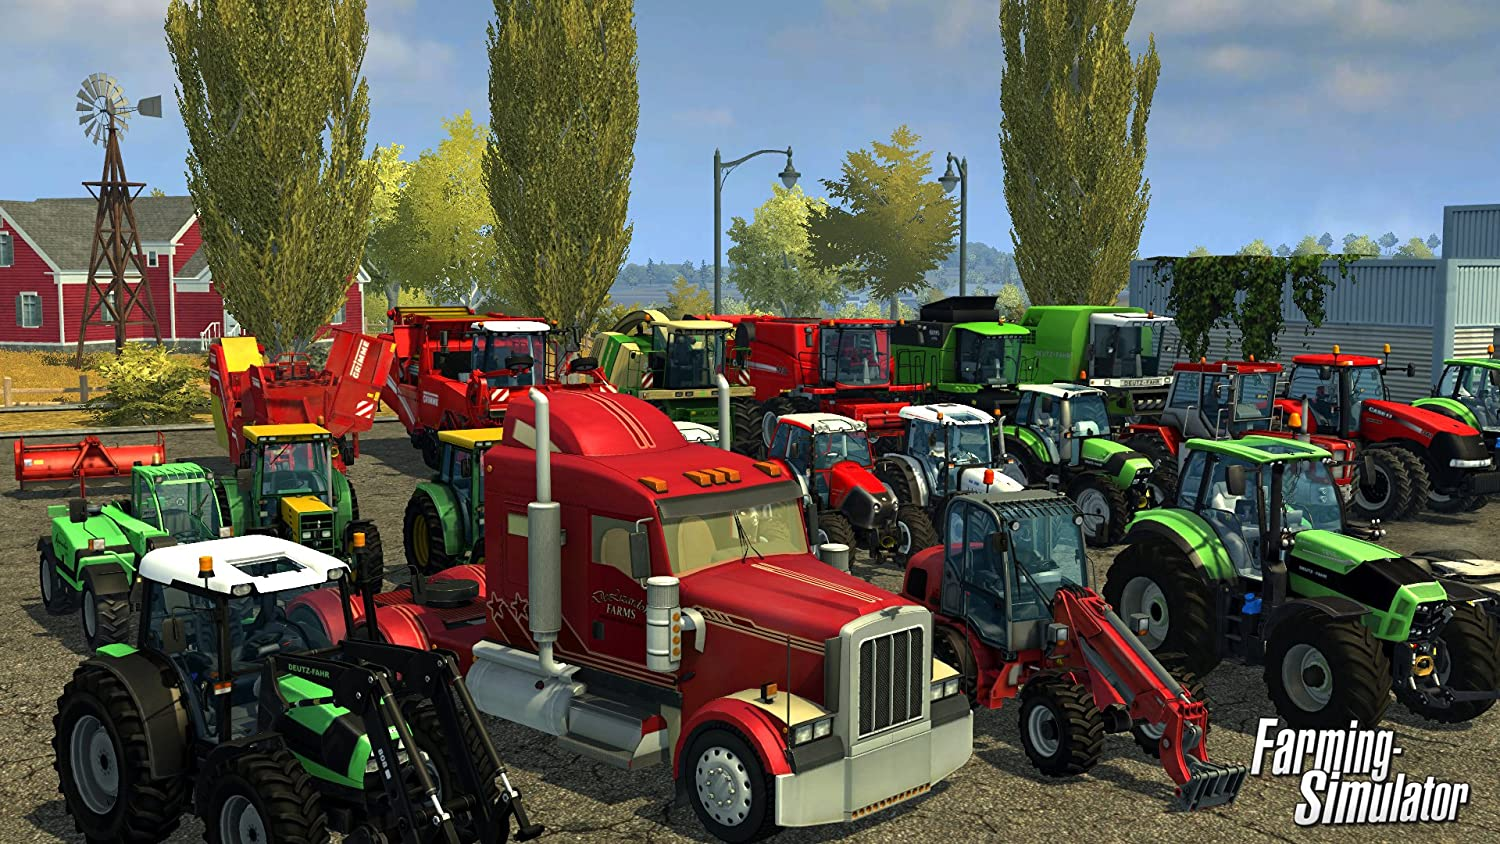 Farm Shop Farming Simulator 2013 Farming Simulator 2013 Xbox